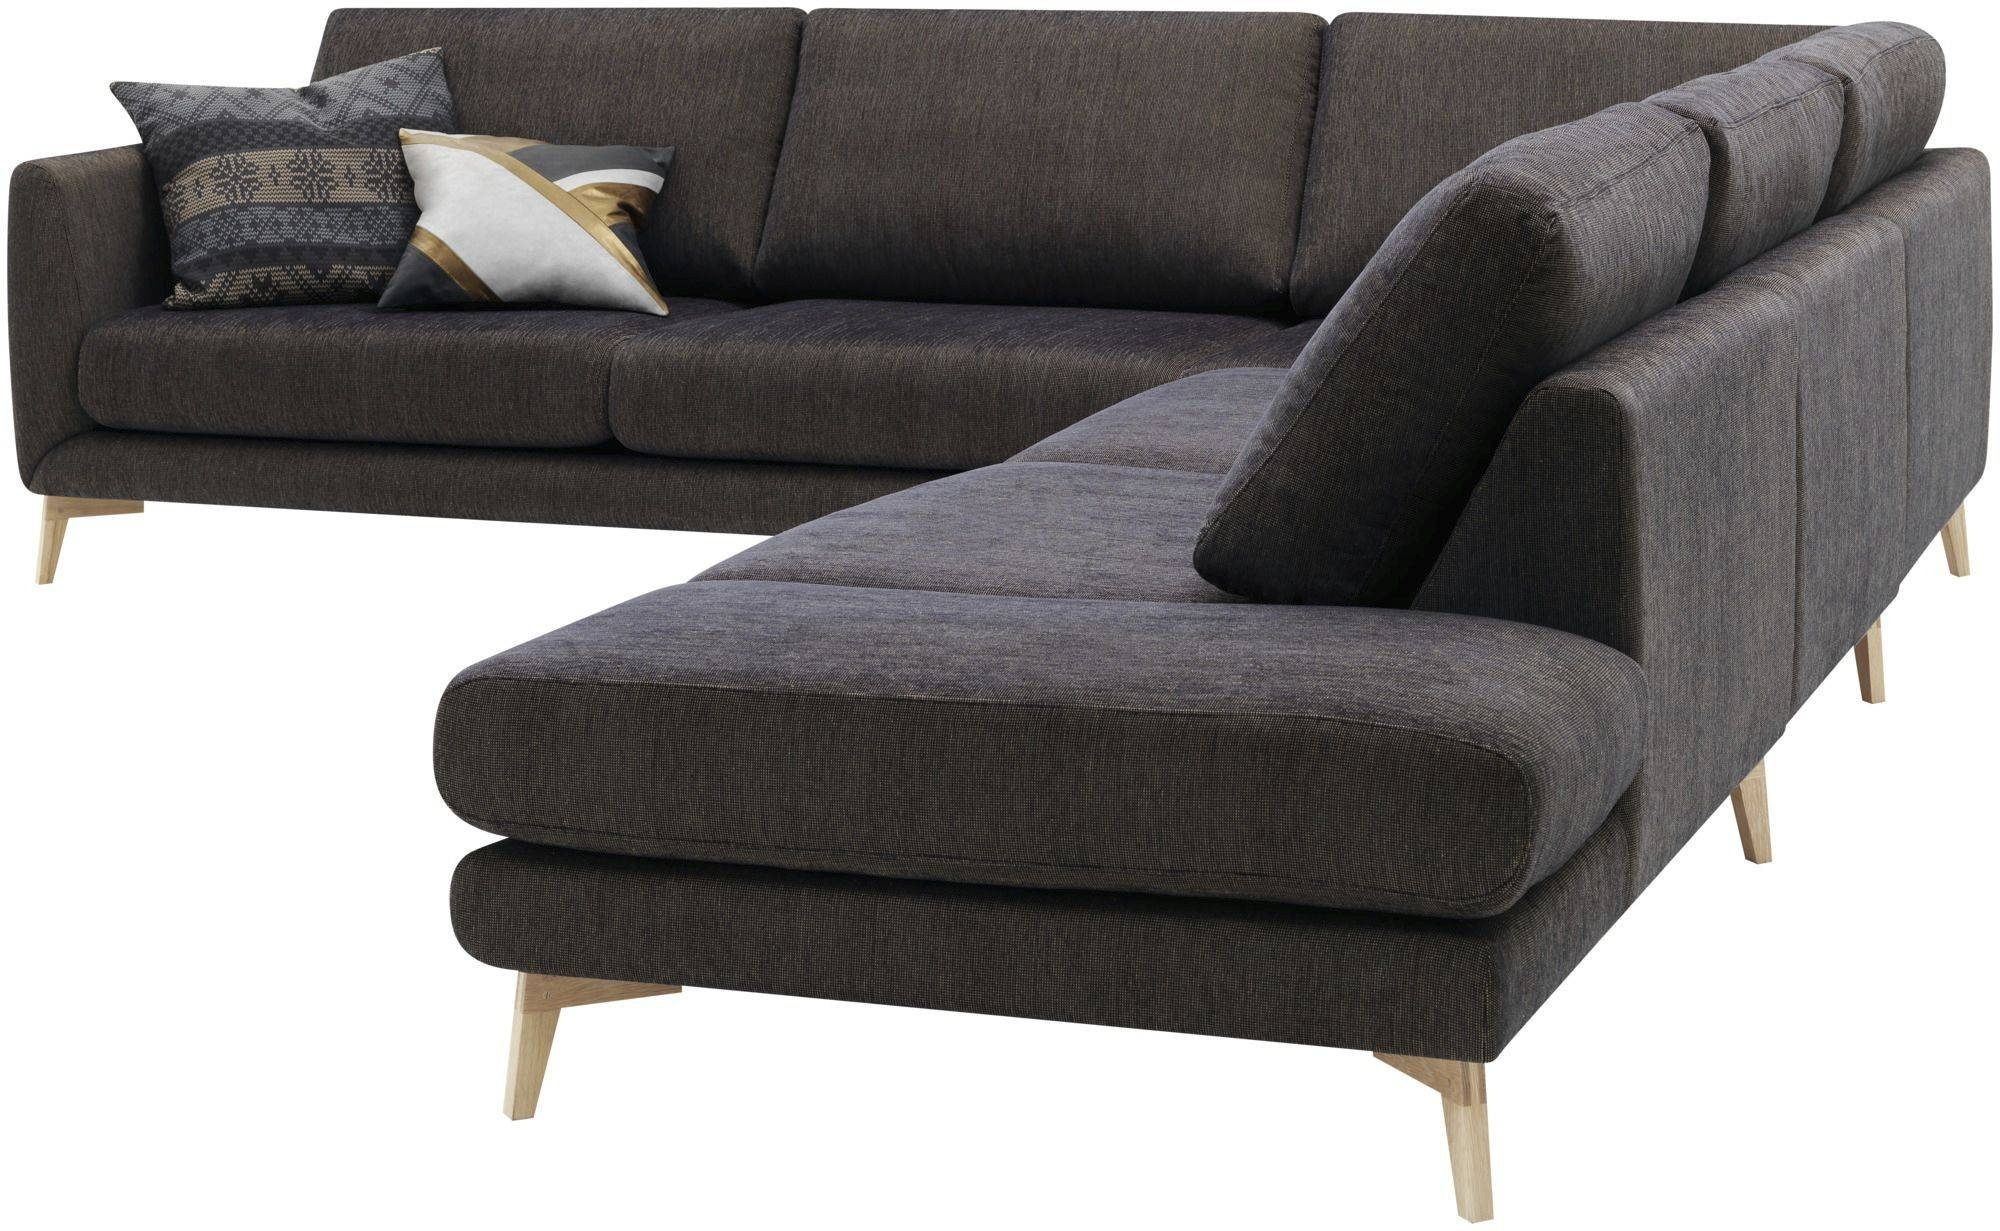 Corner Sofa / Modular / Contemporary / Leather - Fargoanders with regard to Modular Corner Sofas (Image 17 of 30)